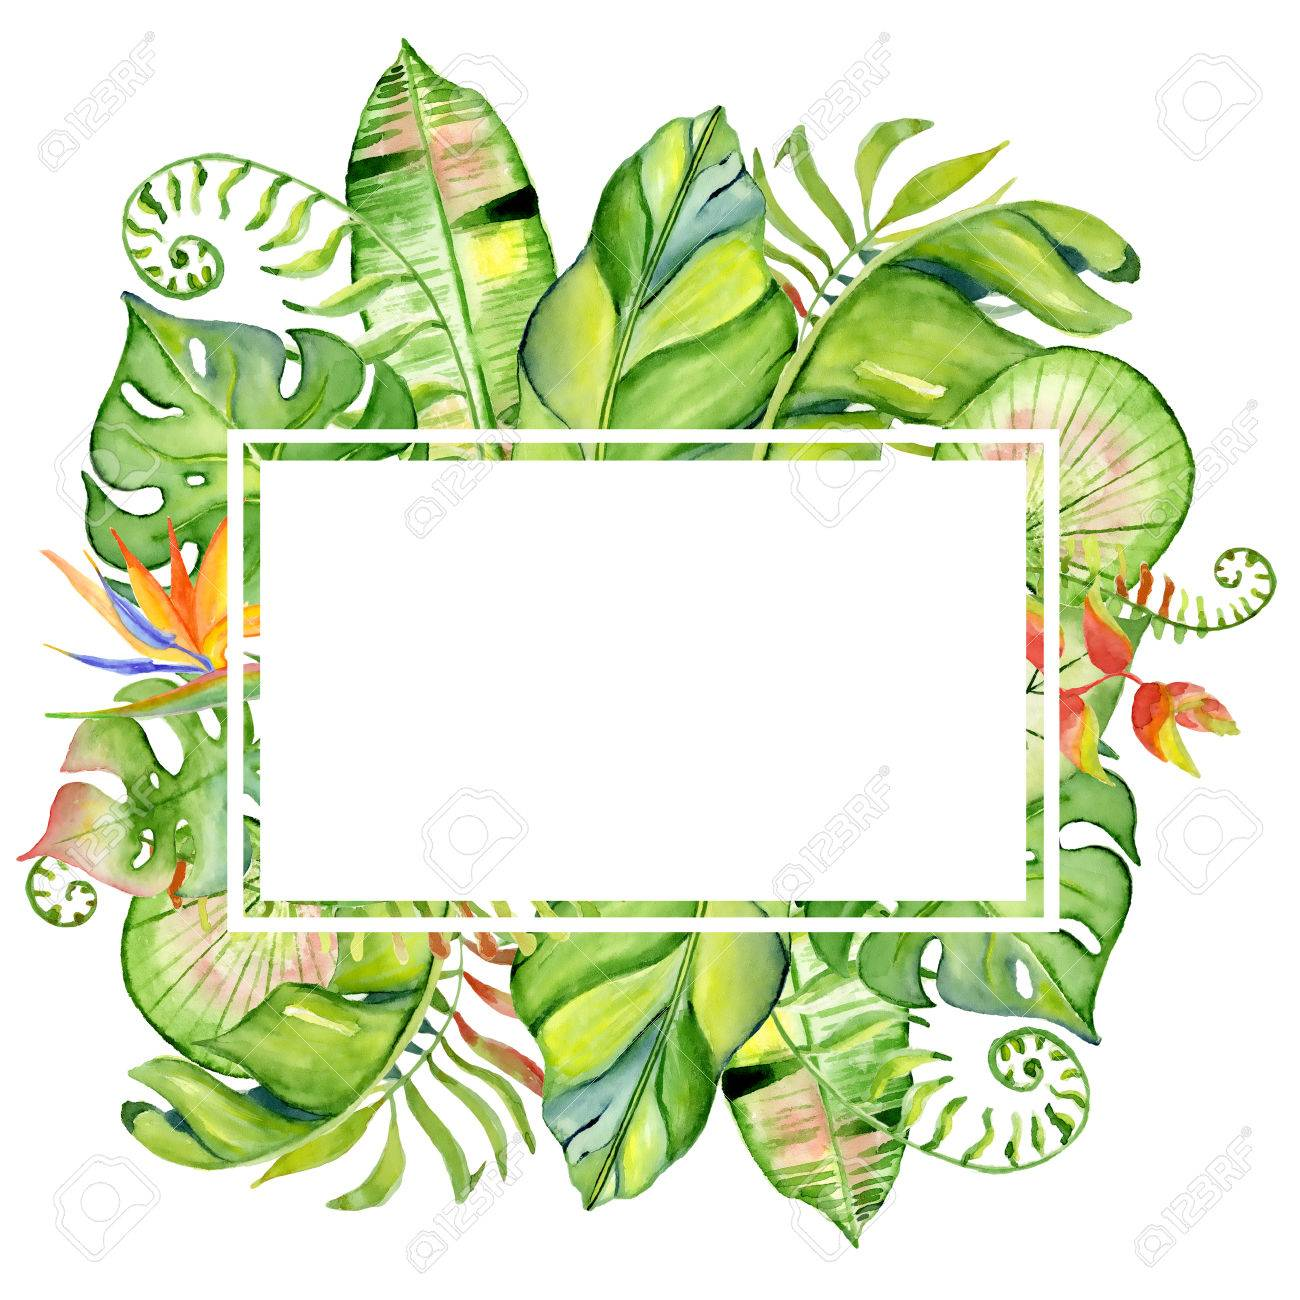 Watercolor Tropical Leaves Frame Hand Drawn Plants Arrangement Stock Photo Picture And Royalty Free Image Image 81523239 Vector tropical jungle frame with gold palm trees and leaves on white background. watercolor tropical leaves frame hand drawn plants arrangement